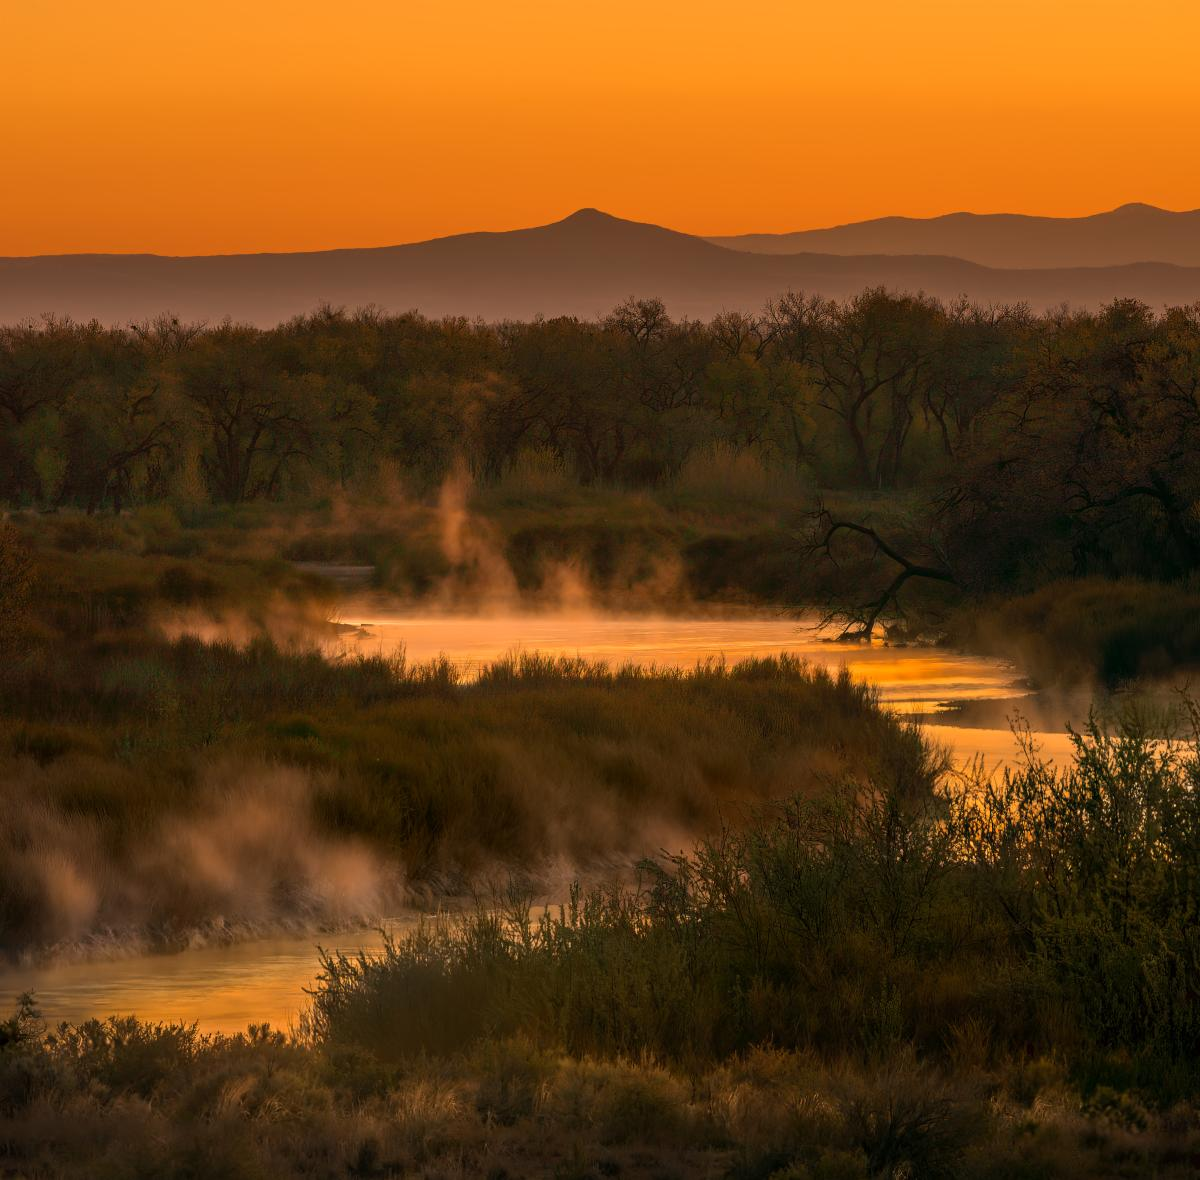 Misty Morning, Photograph by Pam Dorner, New Mexico Magazine